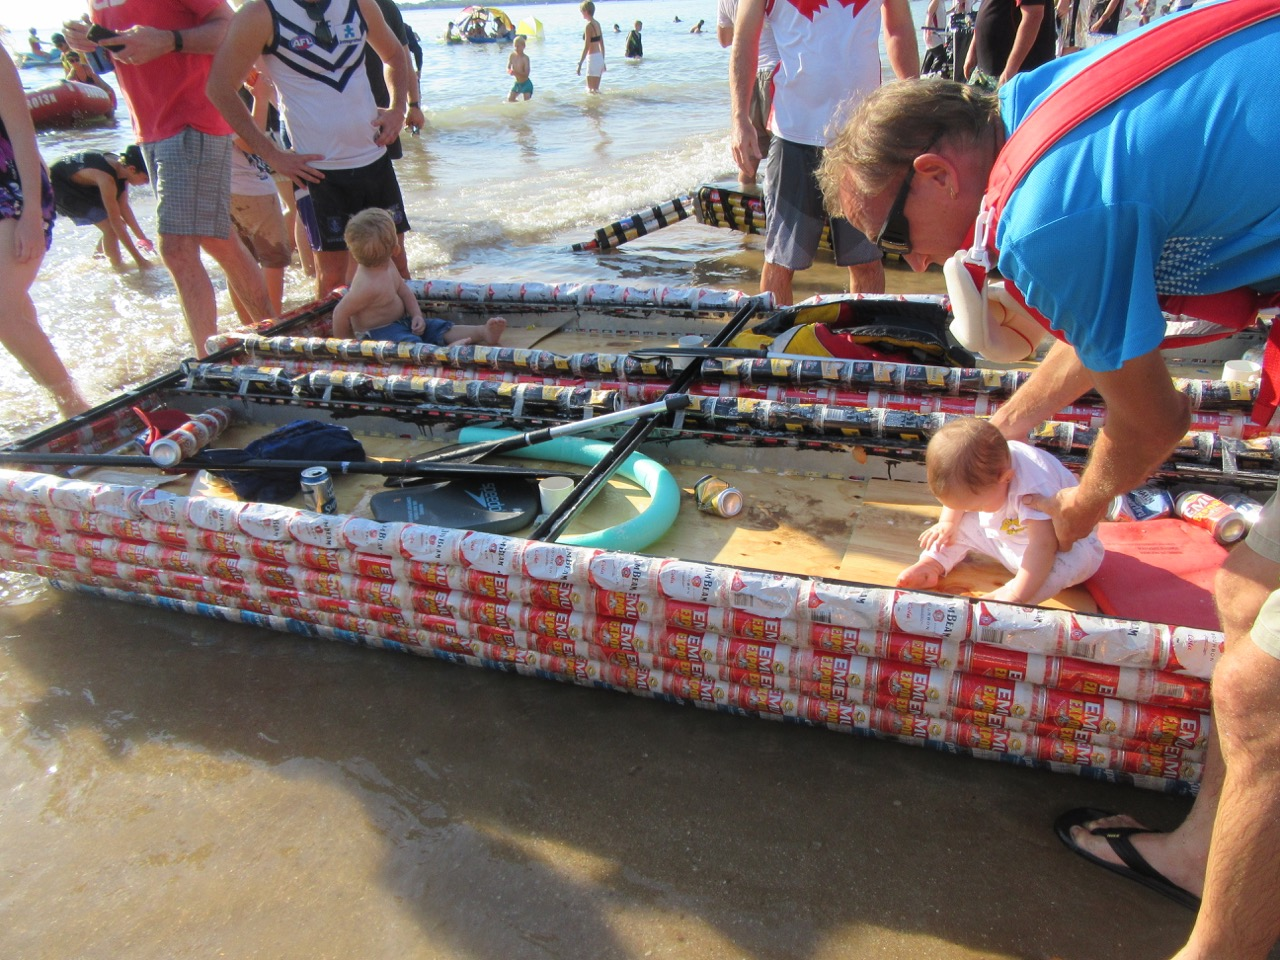 A brief look at one of the Beer Can Boats.